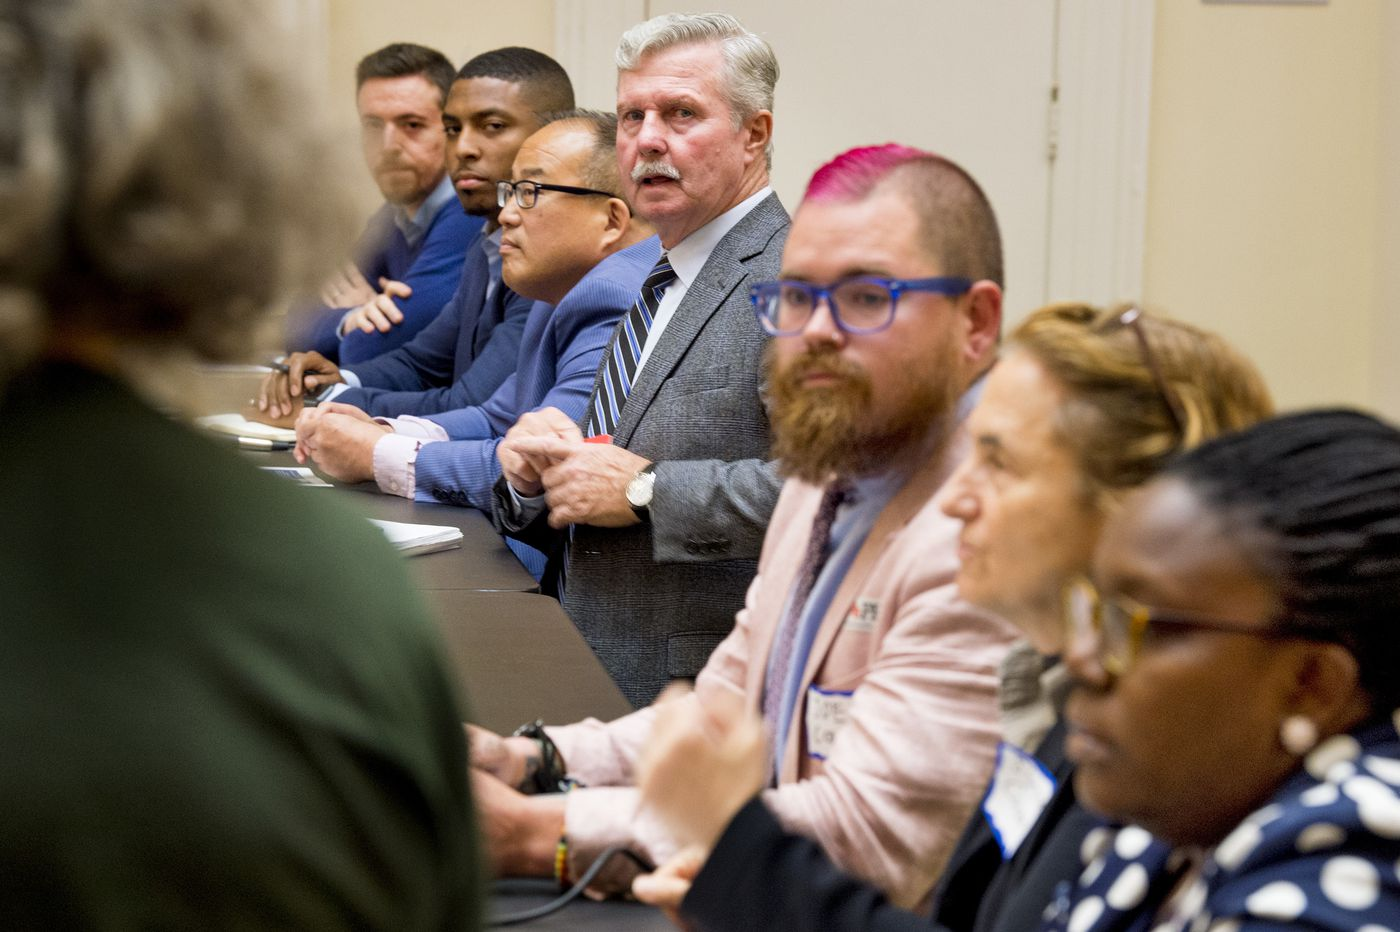 Philadelphia City Council could see a seismic shift in the 2019 election. Here's what you need to know.